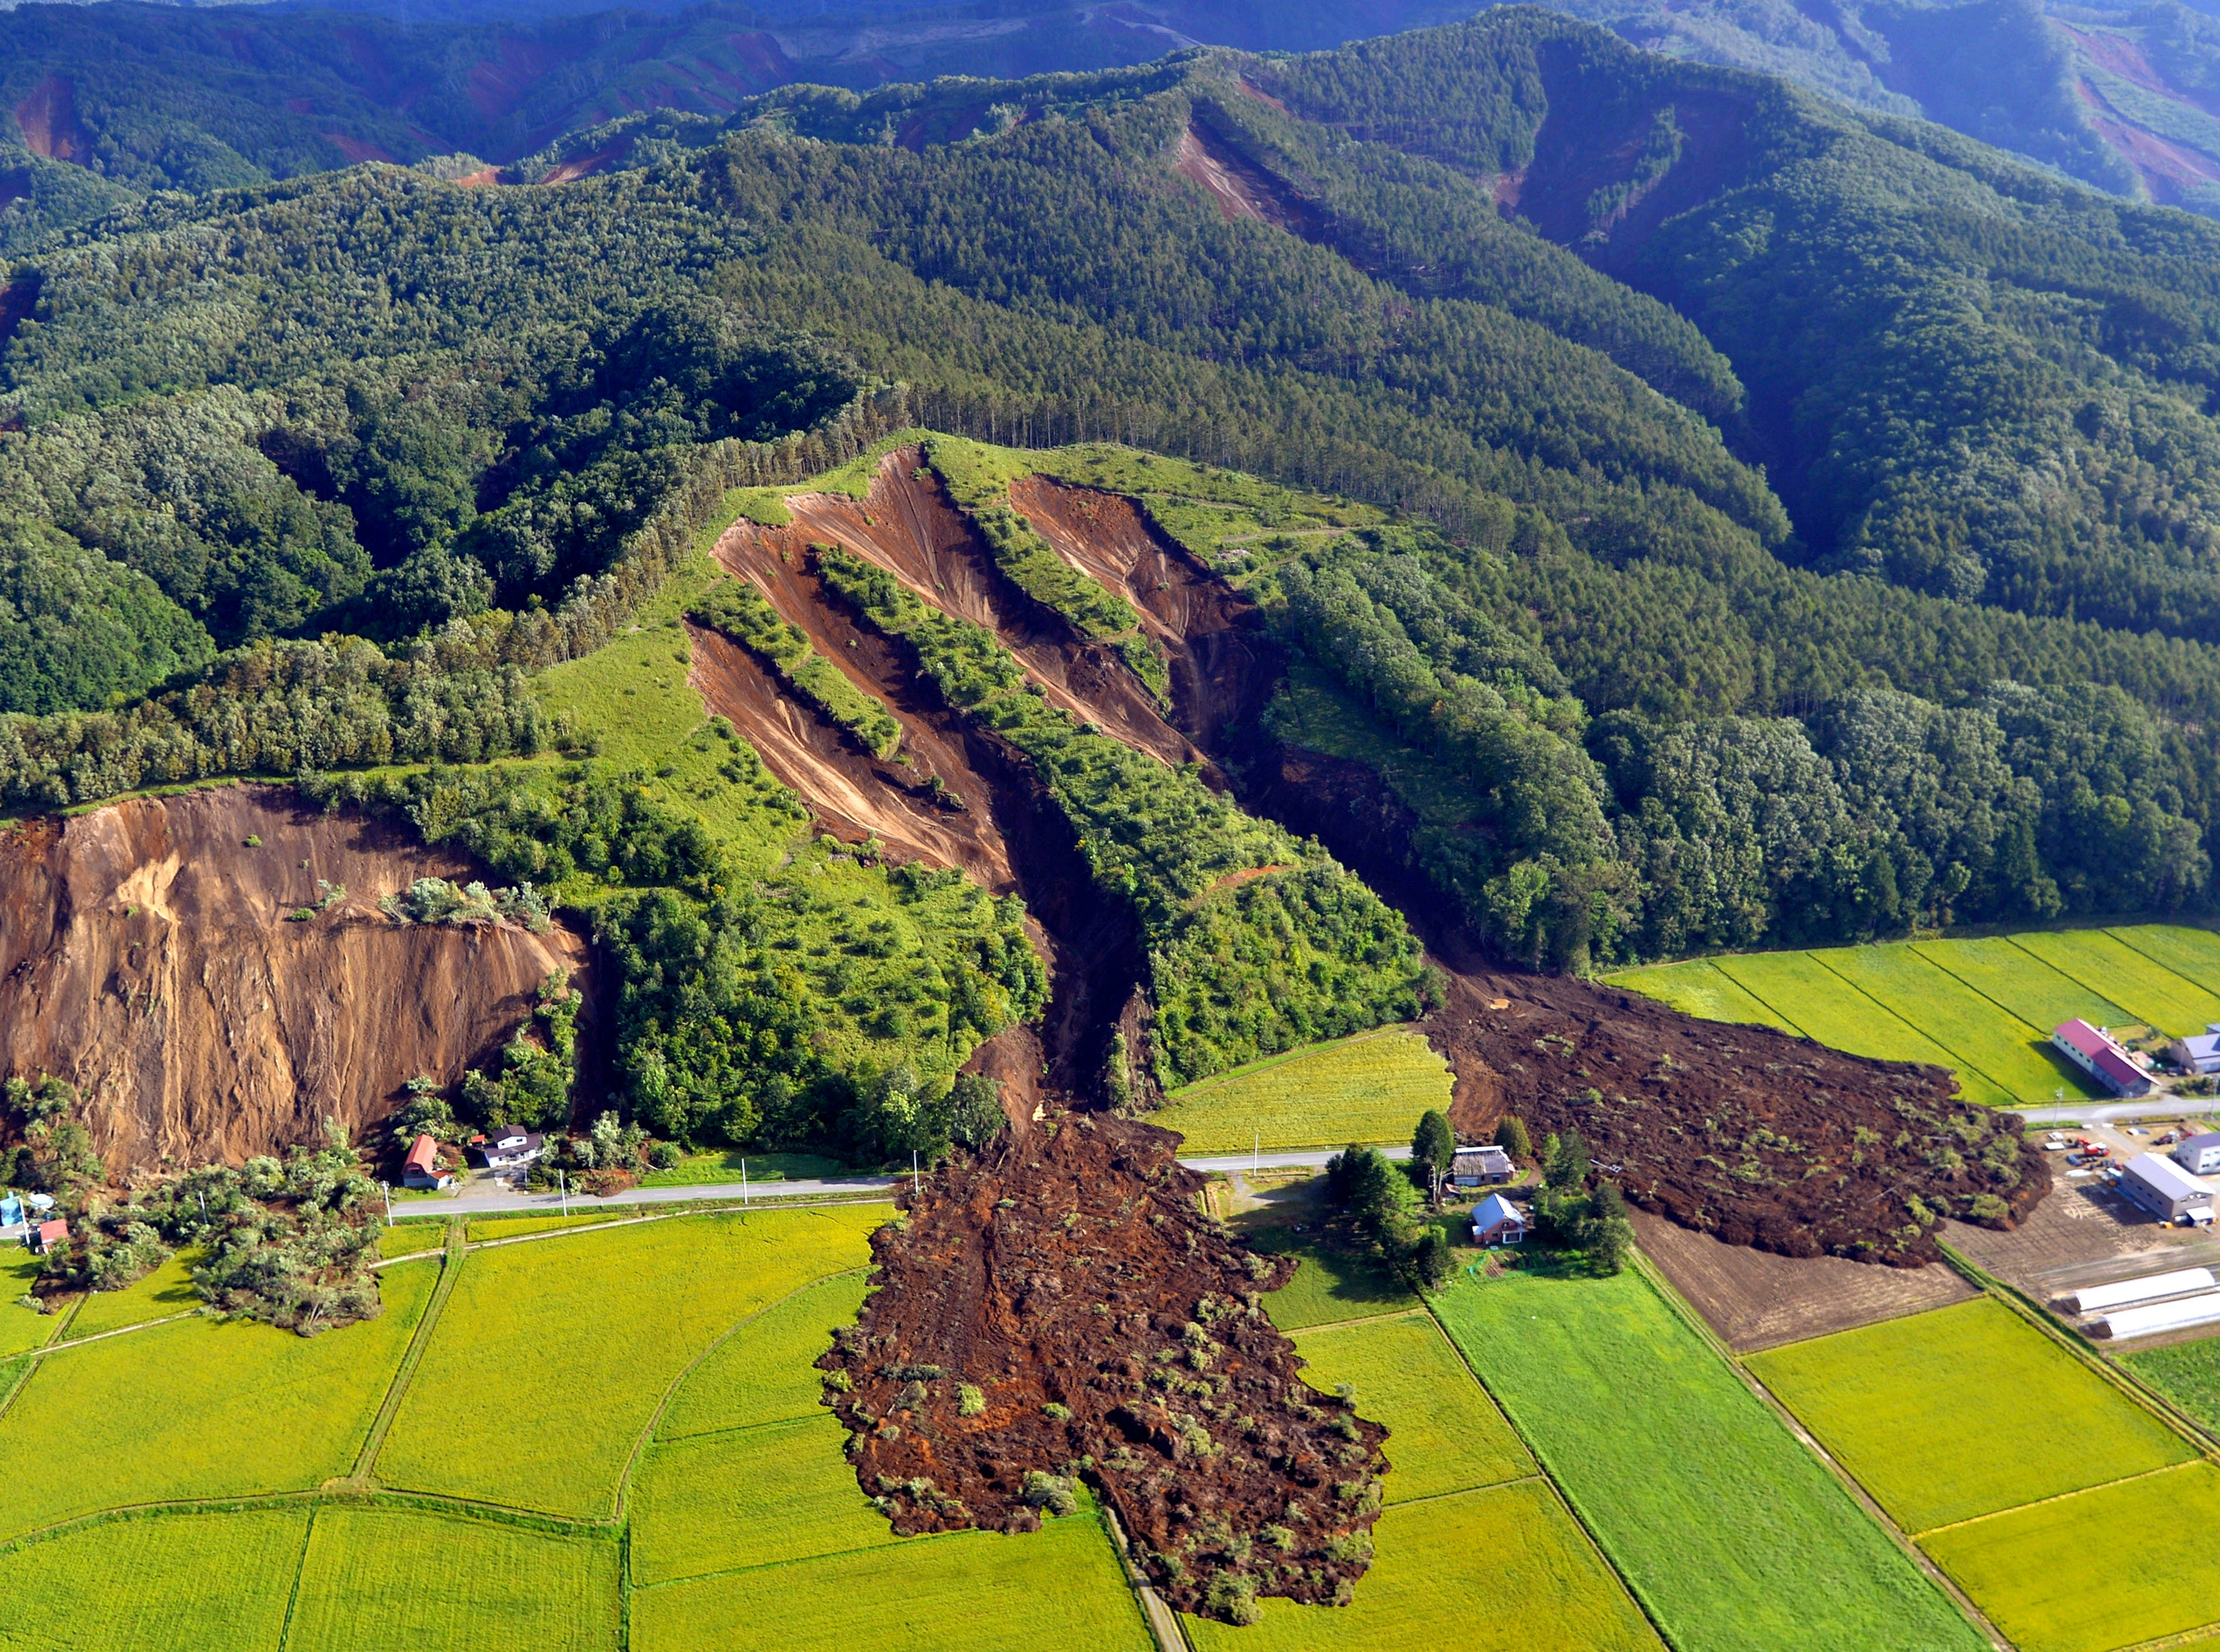 Sept. 6, 2018: An aerial photo shows the aftermath of a large landslide that occurred after an earthquake hit Hokkaido, in Atsuma,  Japan. According to the Japan Meteorological Agency, a strong earthquake of 6.7 magnitude jolted Japan's northern island of Hokkaido in the early hours of Sept. 6, causing large landslides and blackouts.